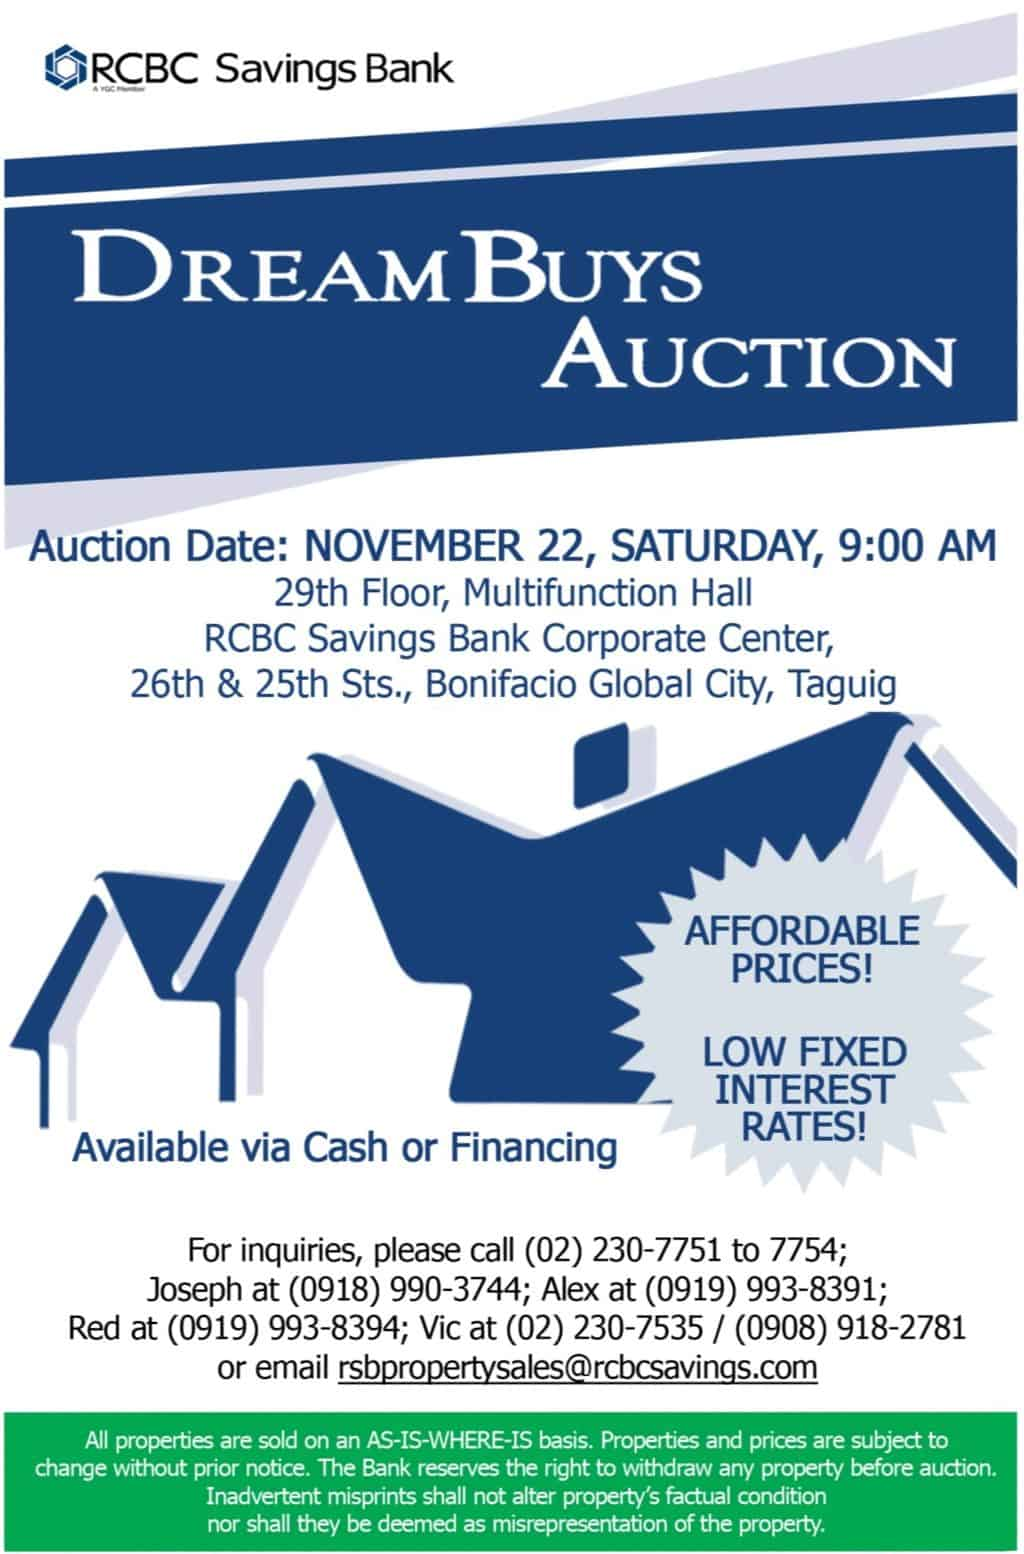 rcbc-savings-bank-foreclosed-properties-auction-november-22-2014-1024px